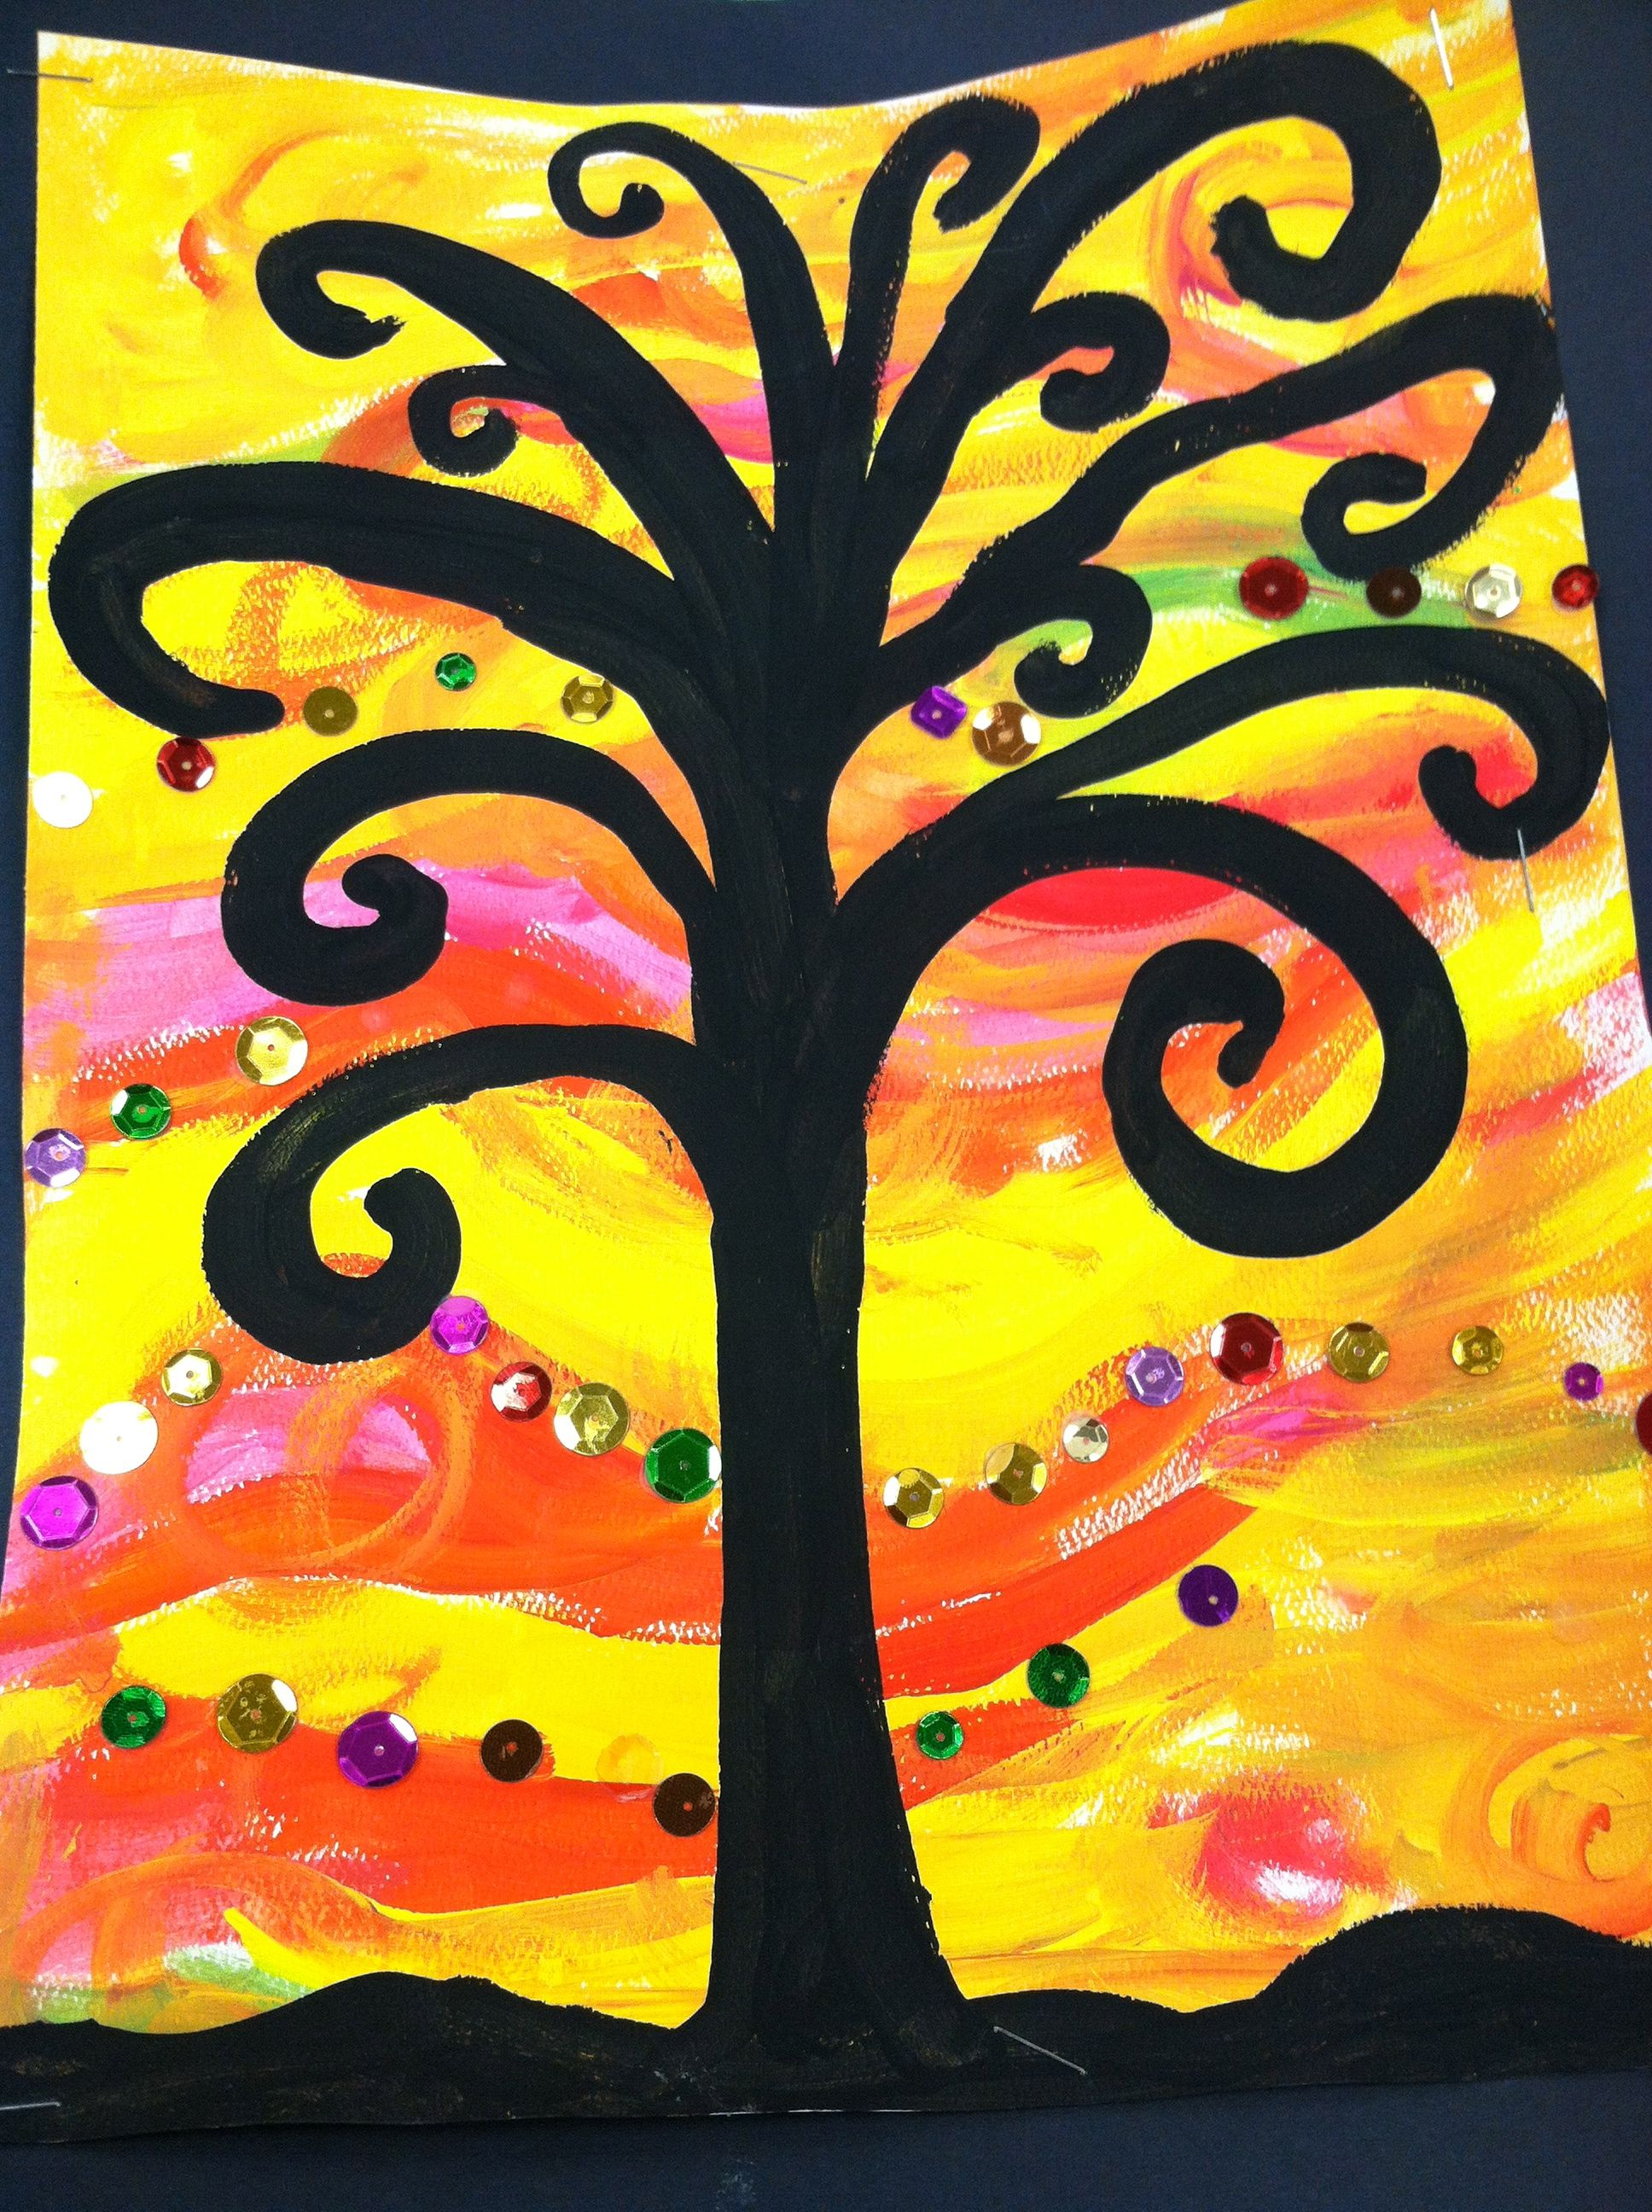 Warm Color Paint Background With Silhouette Tree I Had Them Pick From A Cup Of Sequins For Test Colors Md